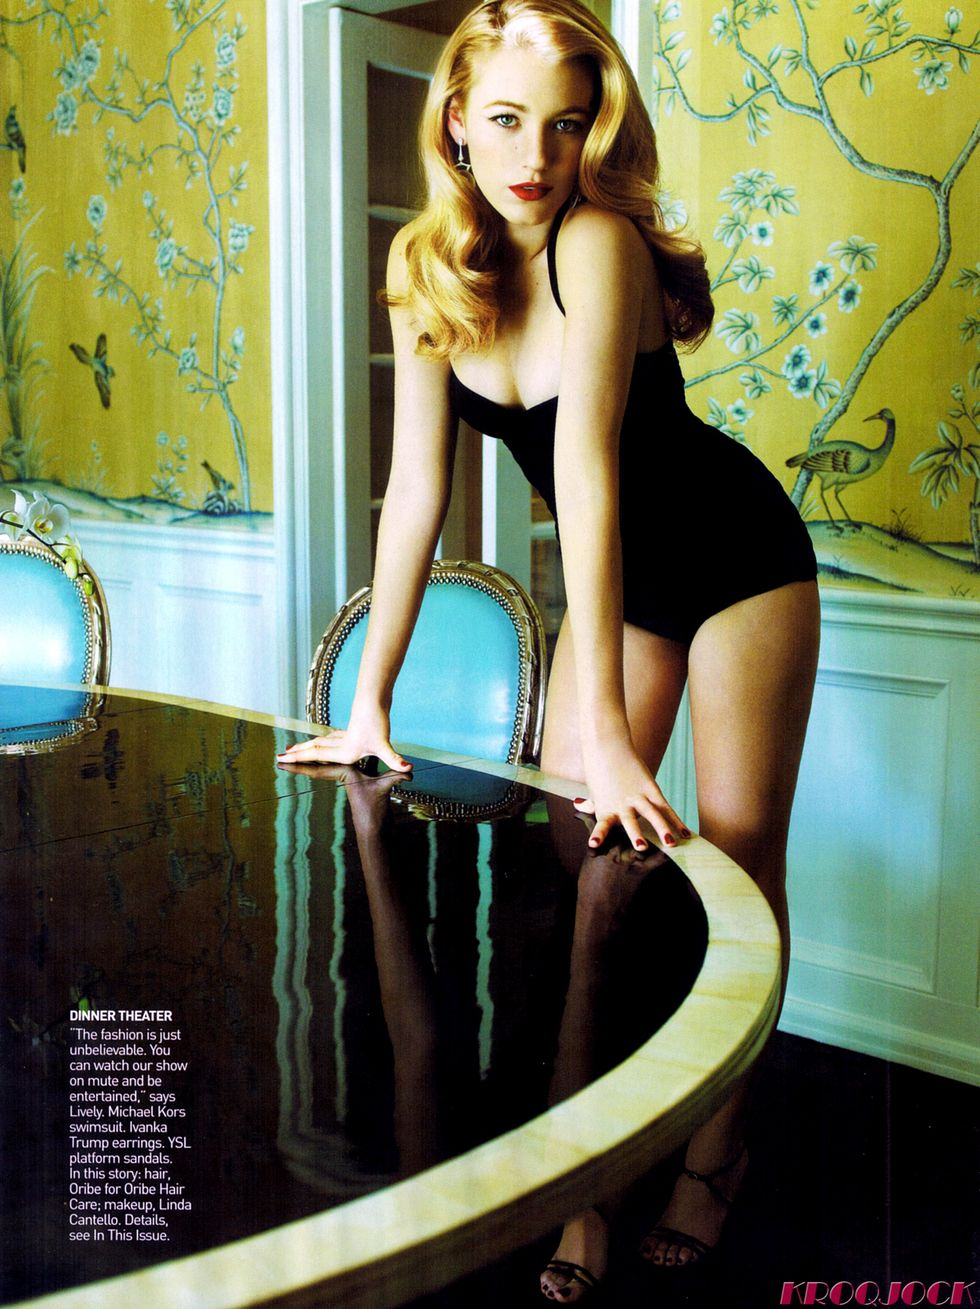 blake-lively-vogue-magazine-february-2009-01